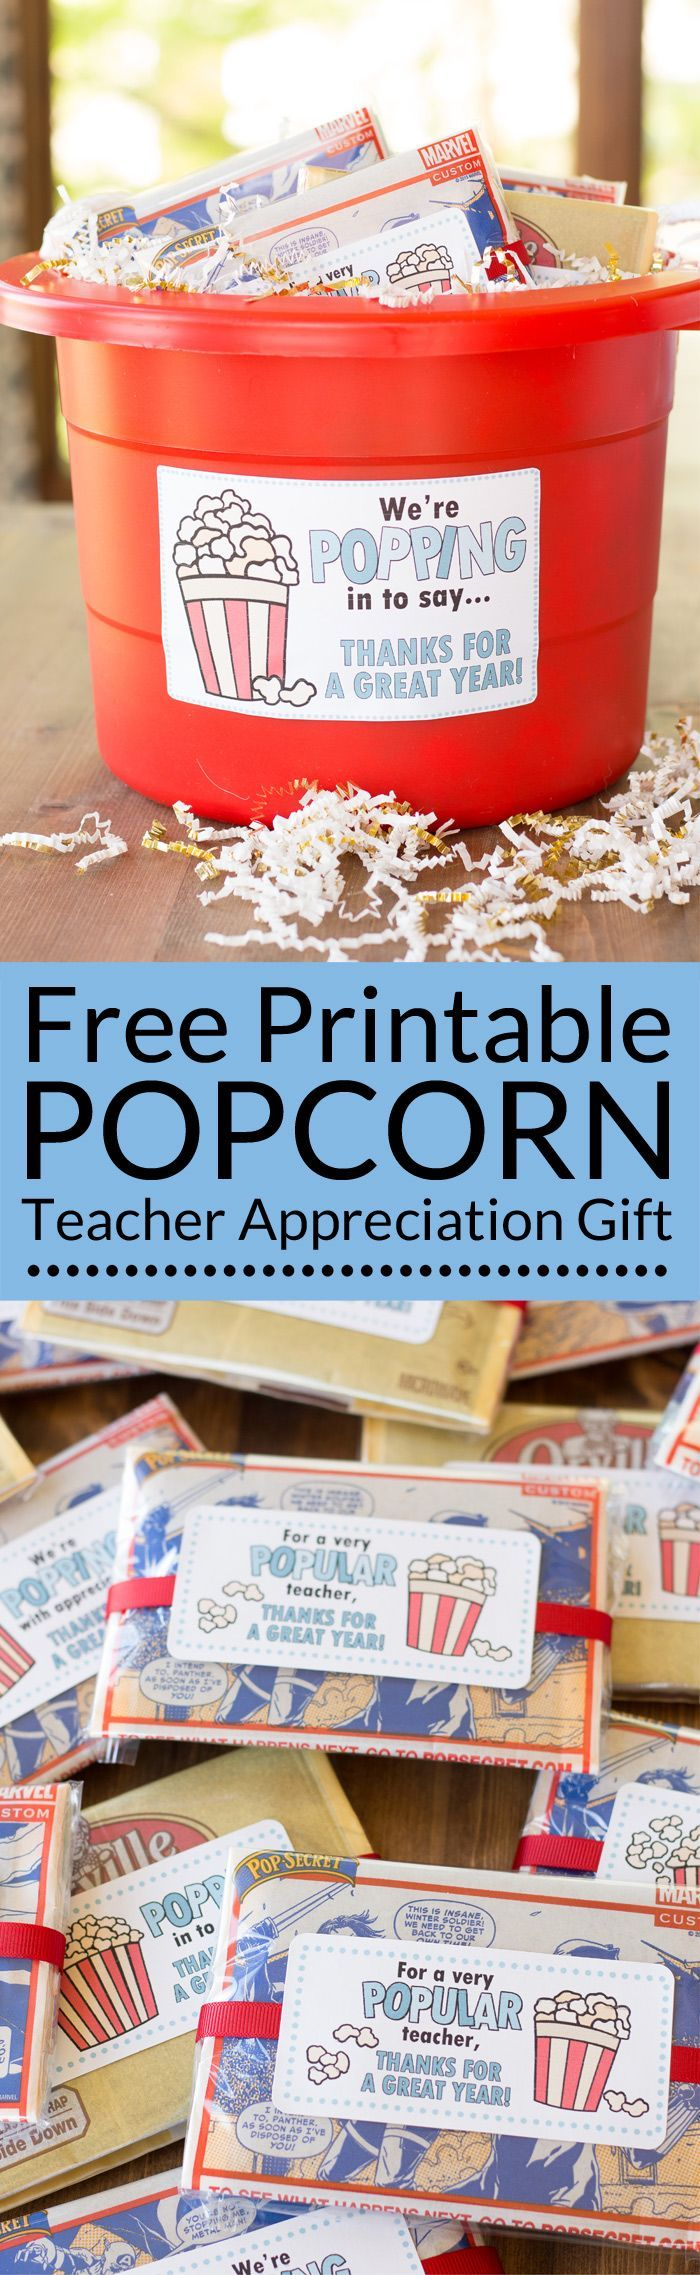 The end of school year is approaching! Tell your teacher thank you with this eas...